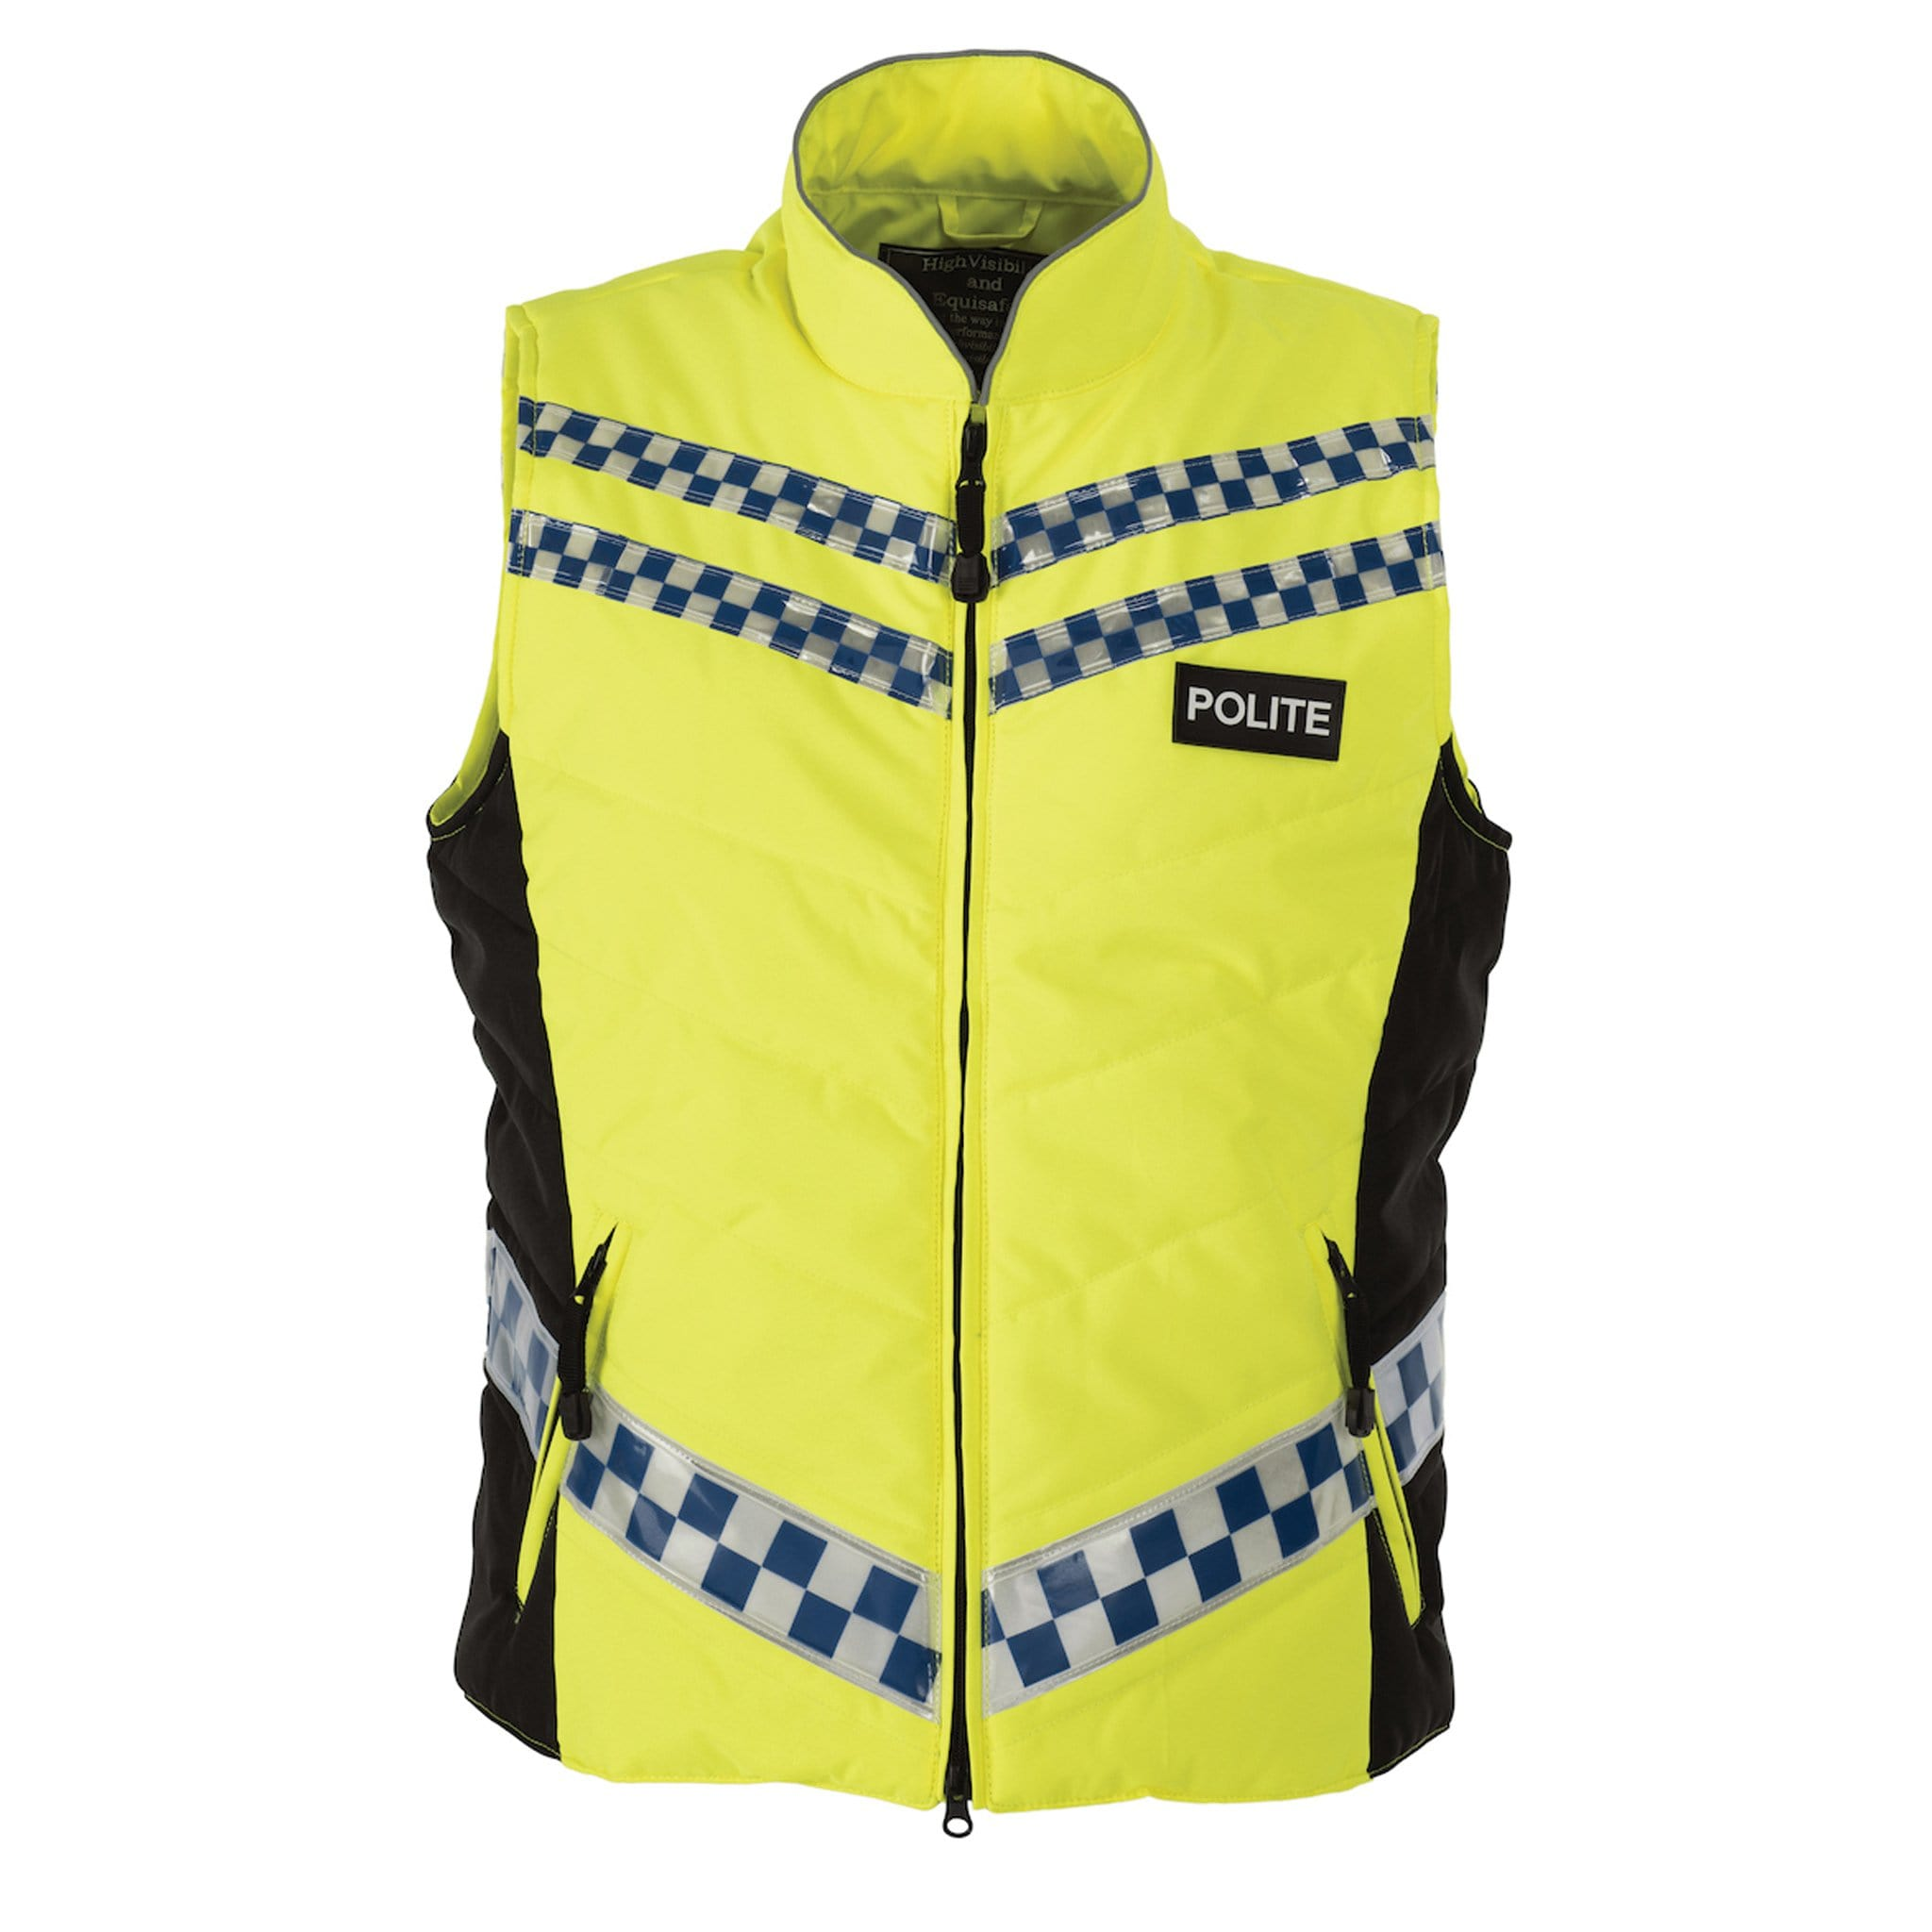 Equisafety Polite Quilted Gilet Front View 577789